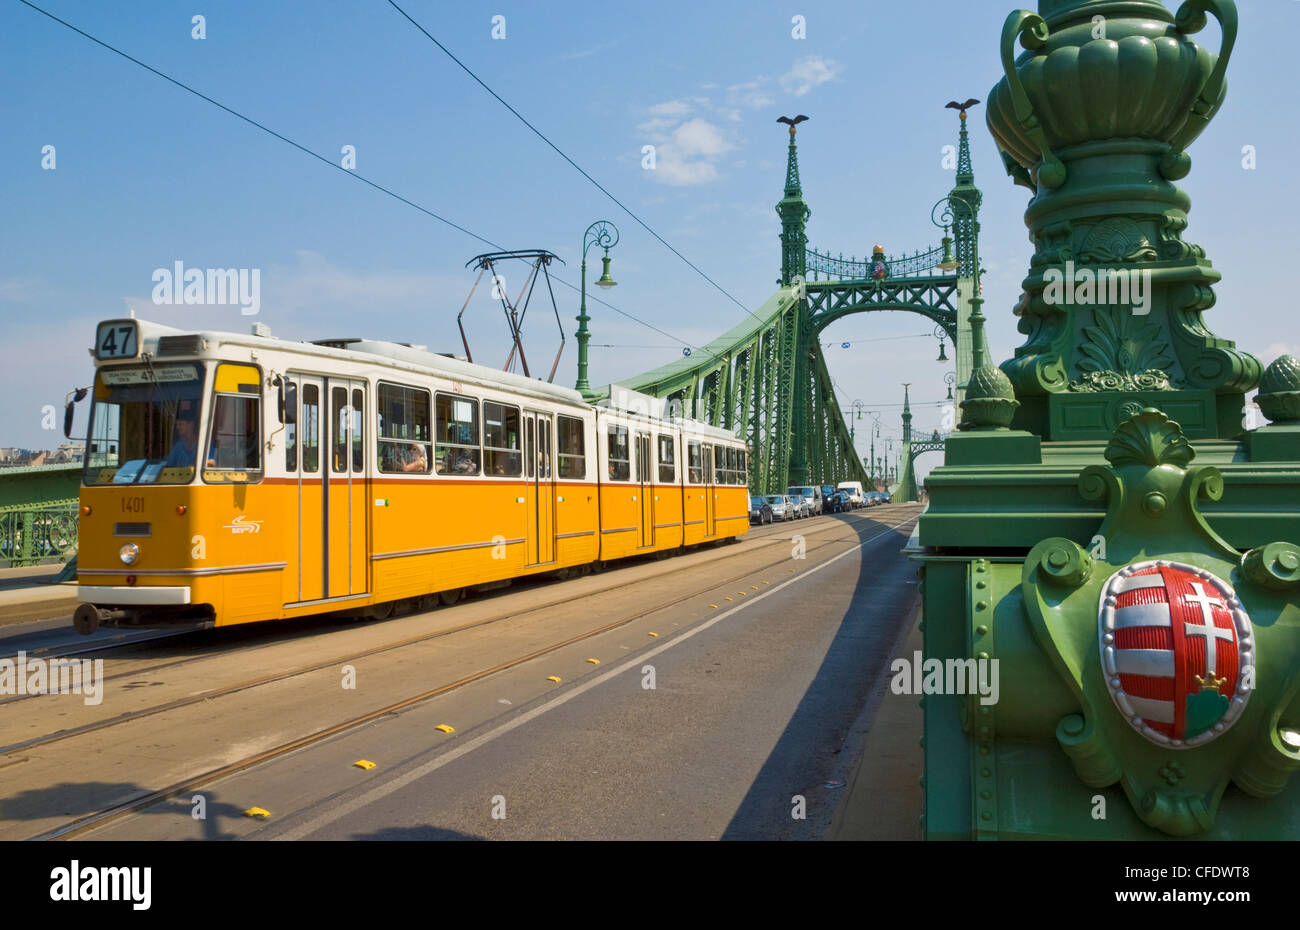 Yellow tram on The Liberty Bridge (Szabadsag hid), over the Rver Danube, Vamhaz Korut street, Budapest, Hungary, - Stock Image